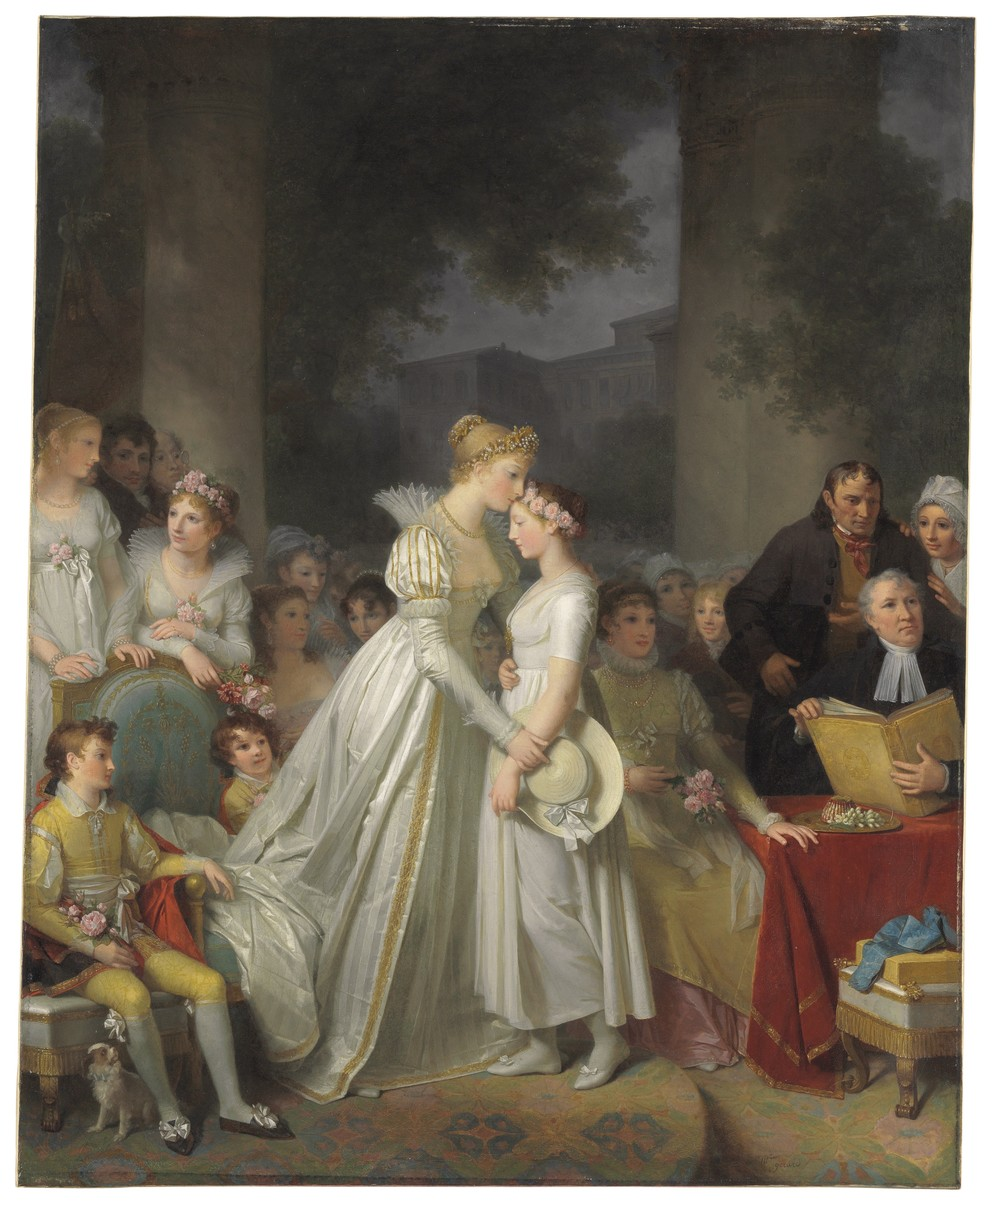 La Rosière or Le Baiser de Protection de la dame du lieu, (The kiss of protection by the local chatelaine) by Marguerite Gérard (1761-1837) depicts an important ceremony in a small French village where a pure young woman is chosen and celebrated for her virtue. Depicted on the left, holding the book, is Gérard's brother-in-law artist Jean-Honoré Fragonard, who also has a painting in Christie's Classic Week.  Estimate: $500,000 to $700,000.  (PHOTO CREDIT: CHRISTIE'S IMAGES LTD. 2016)